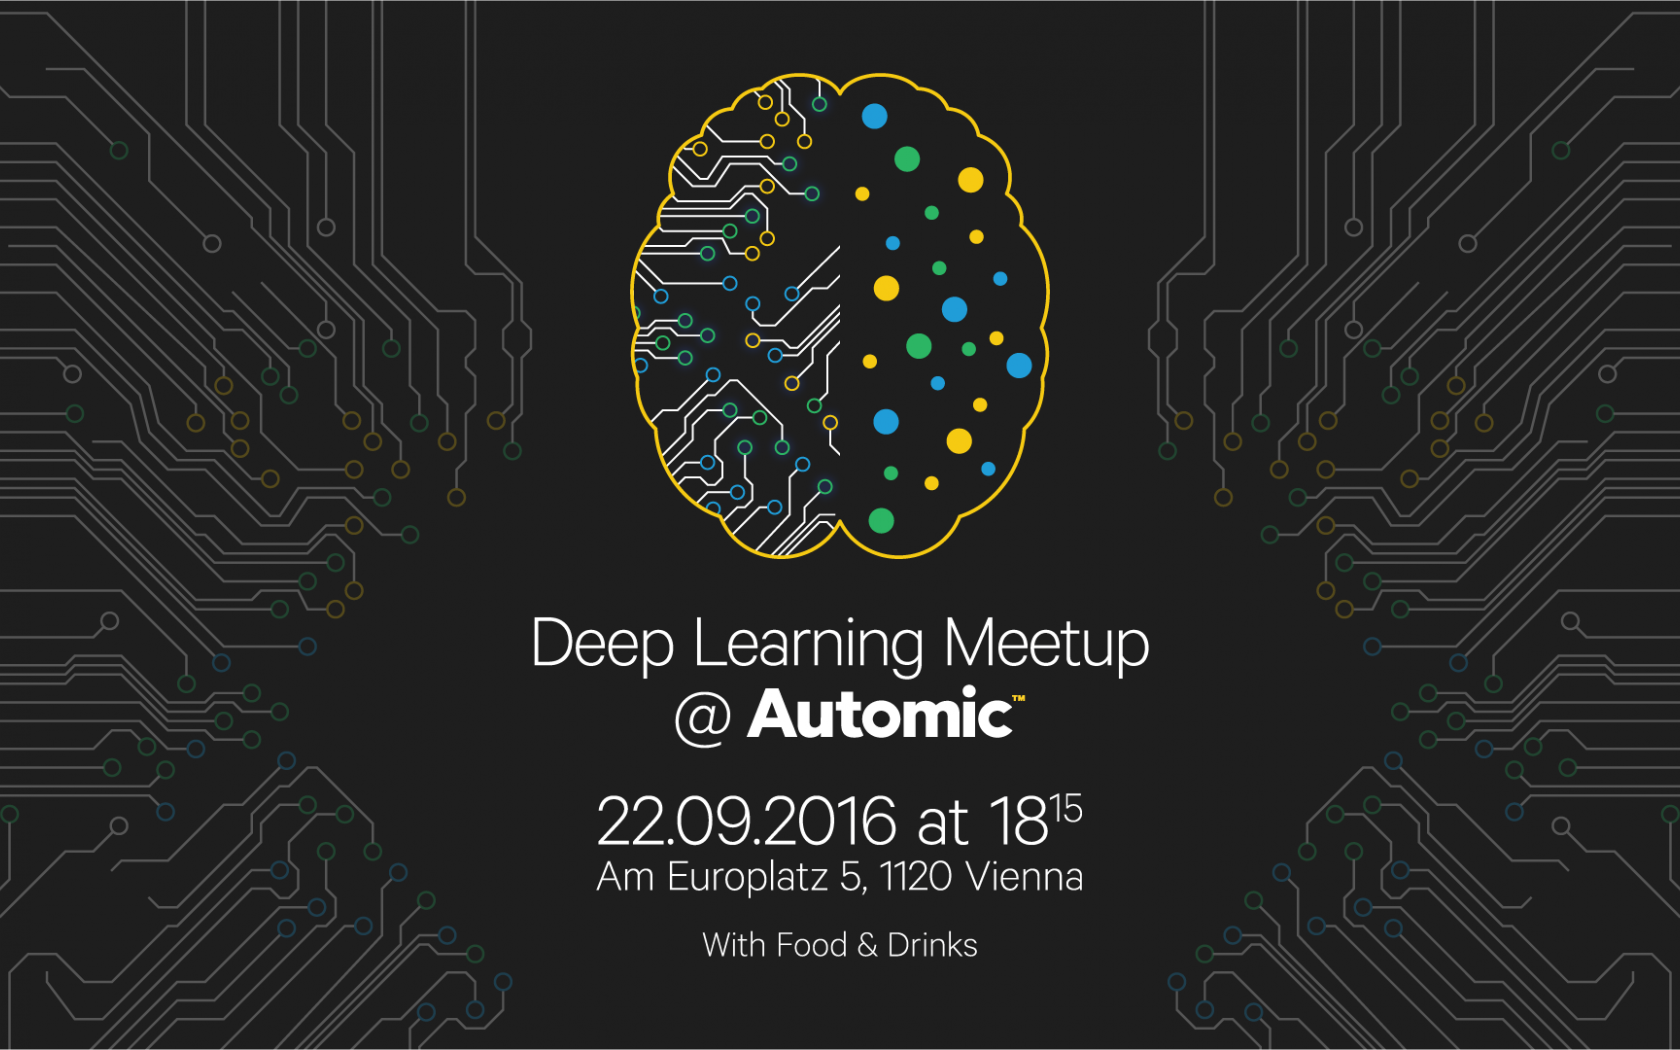 Free Download Photos Vienna Deep Learning Meetup Vienna Meetup 1920x1080 For Your Desktop Mobile Tablet Explore 18 Machine Learning Wallpapers Machine Learning Wallpapers Machine Wallpaper Desktop Machine Wallpaper